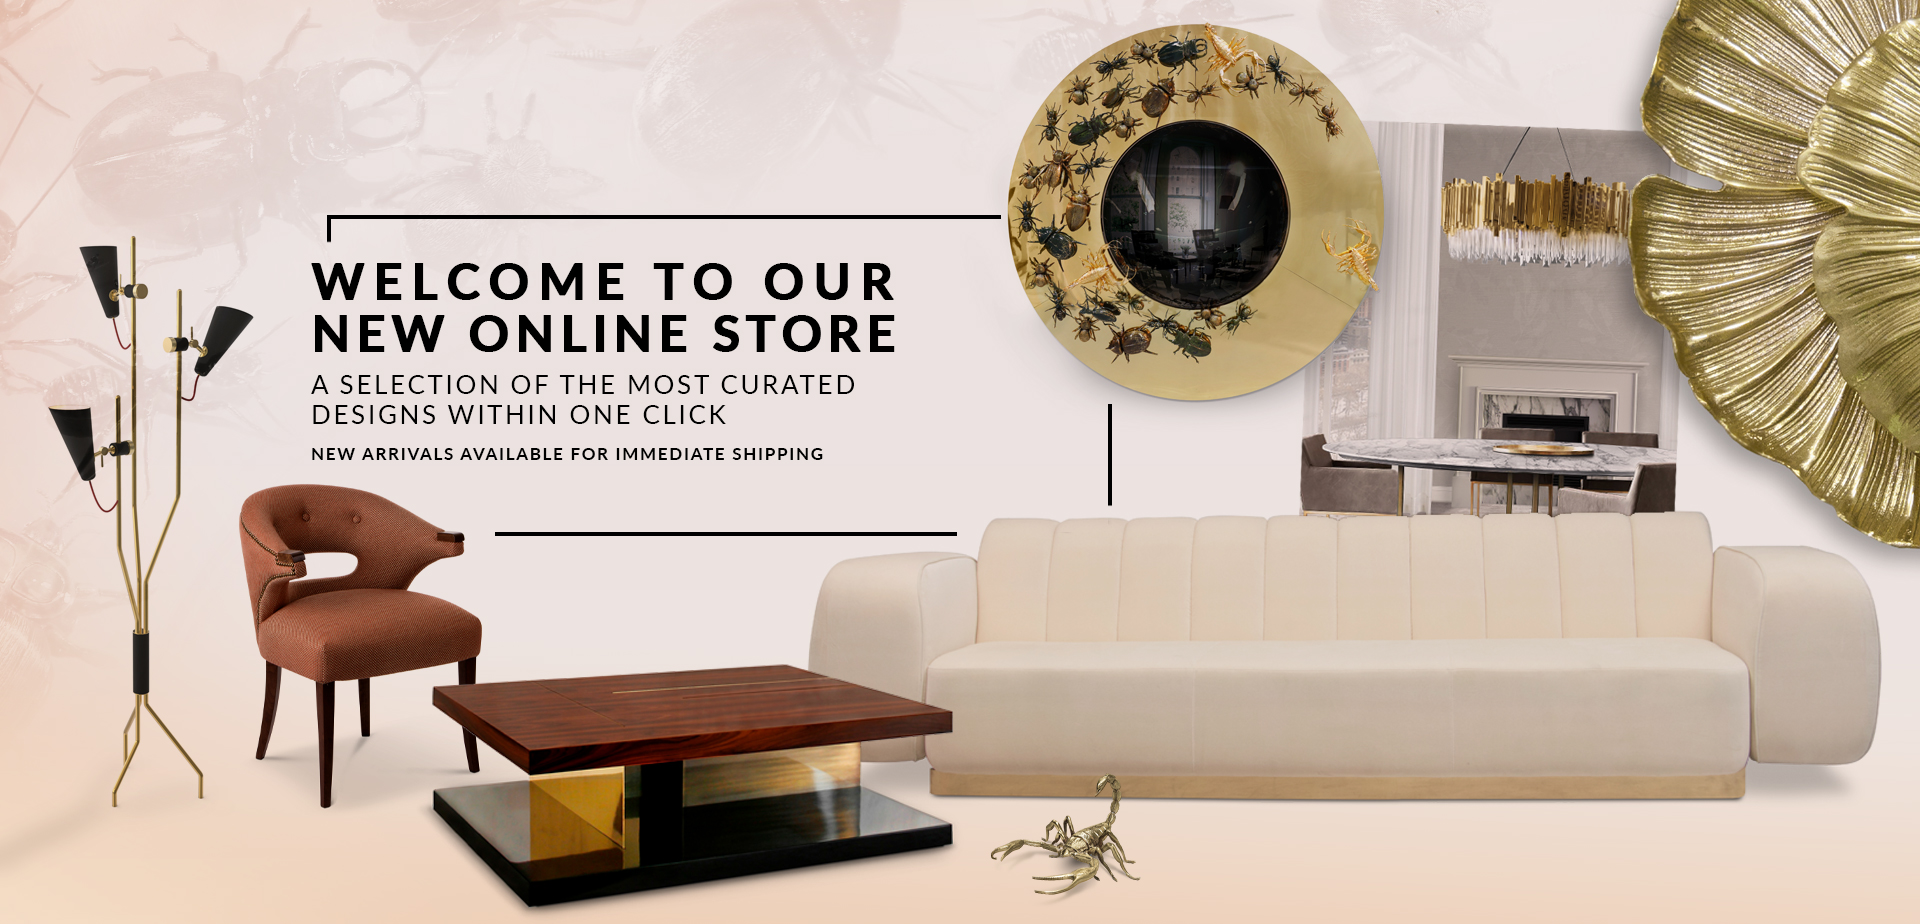 Welcome to our new online store!